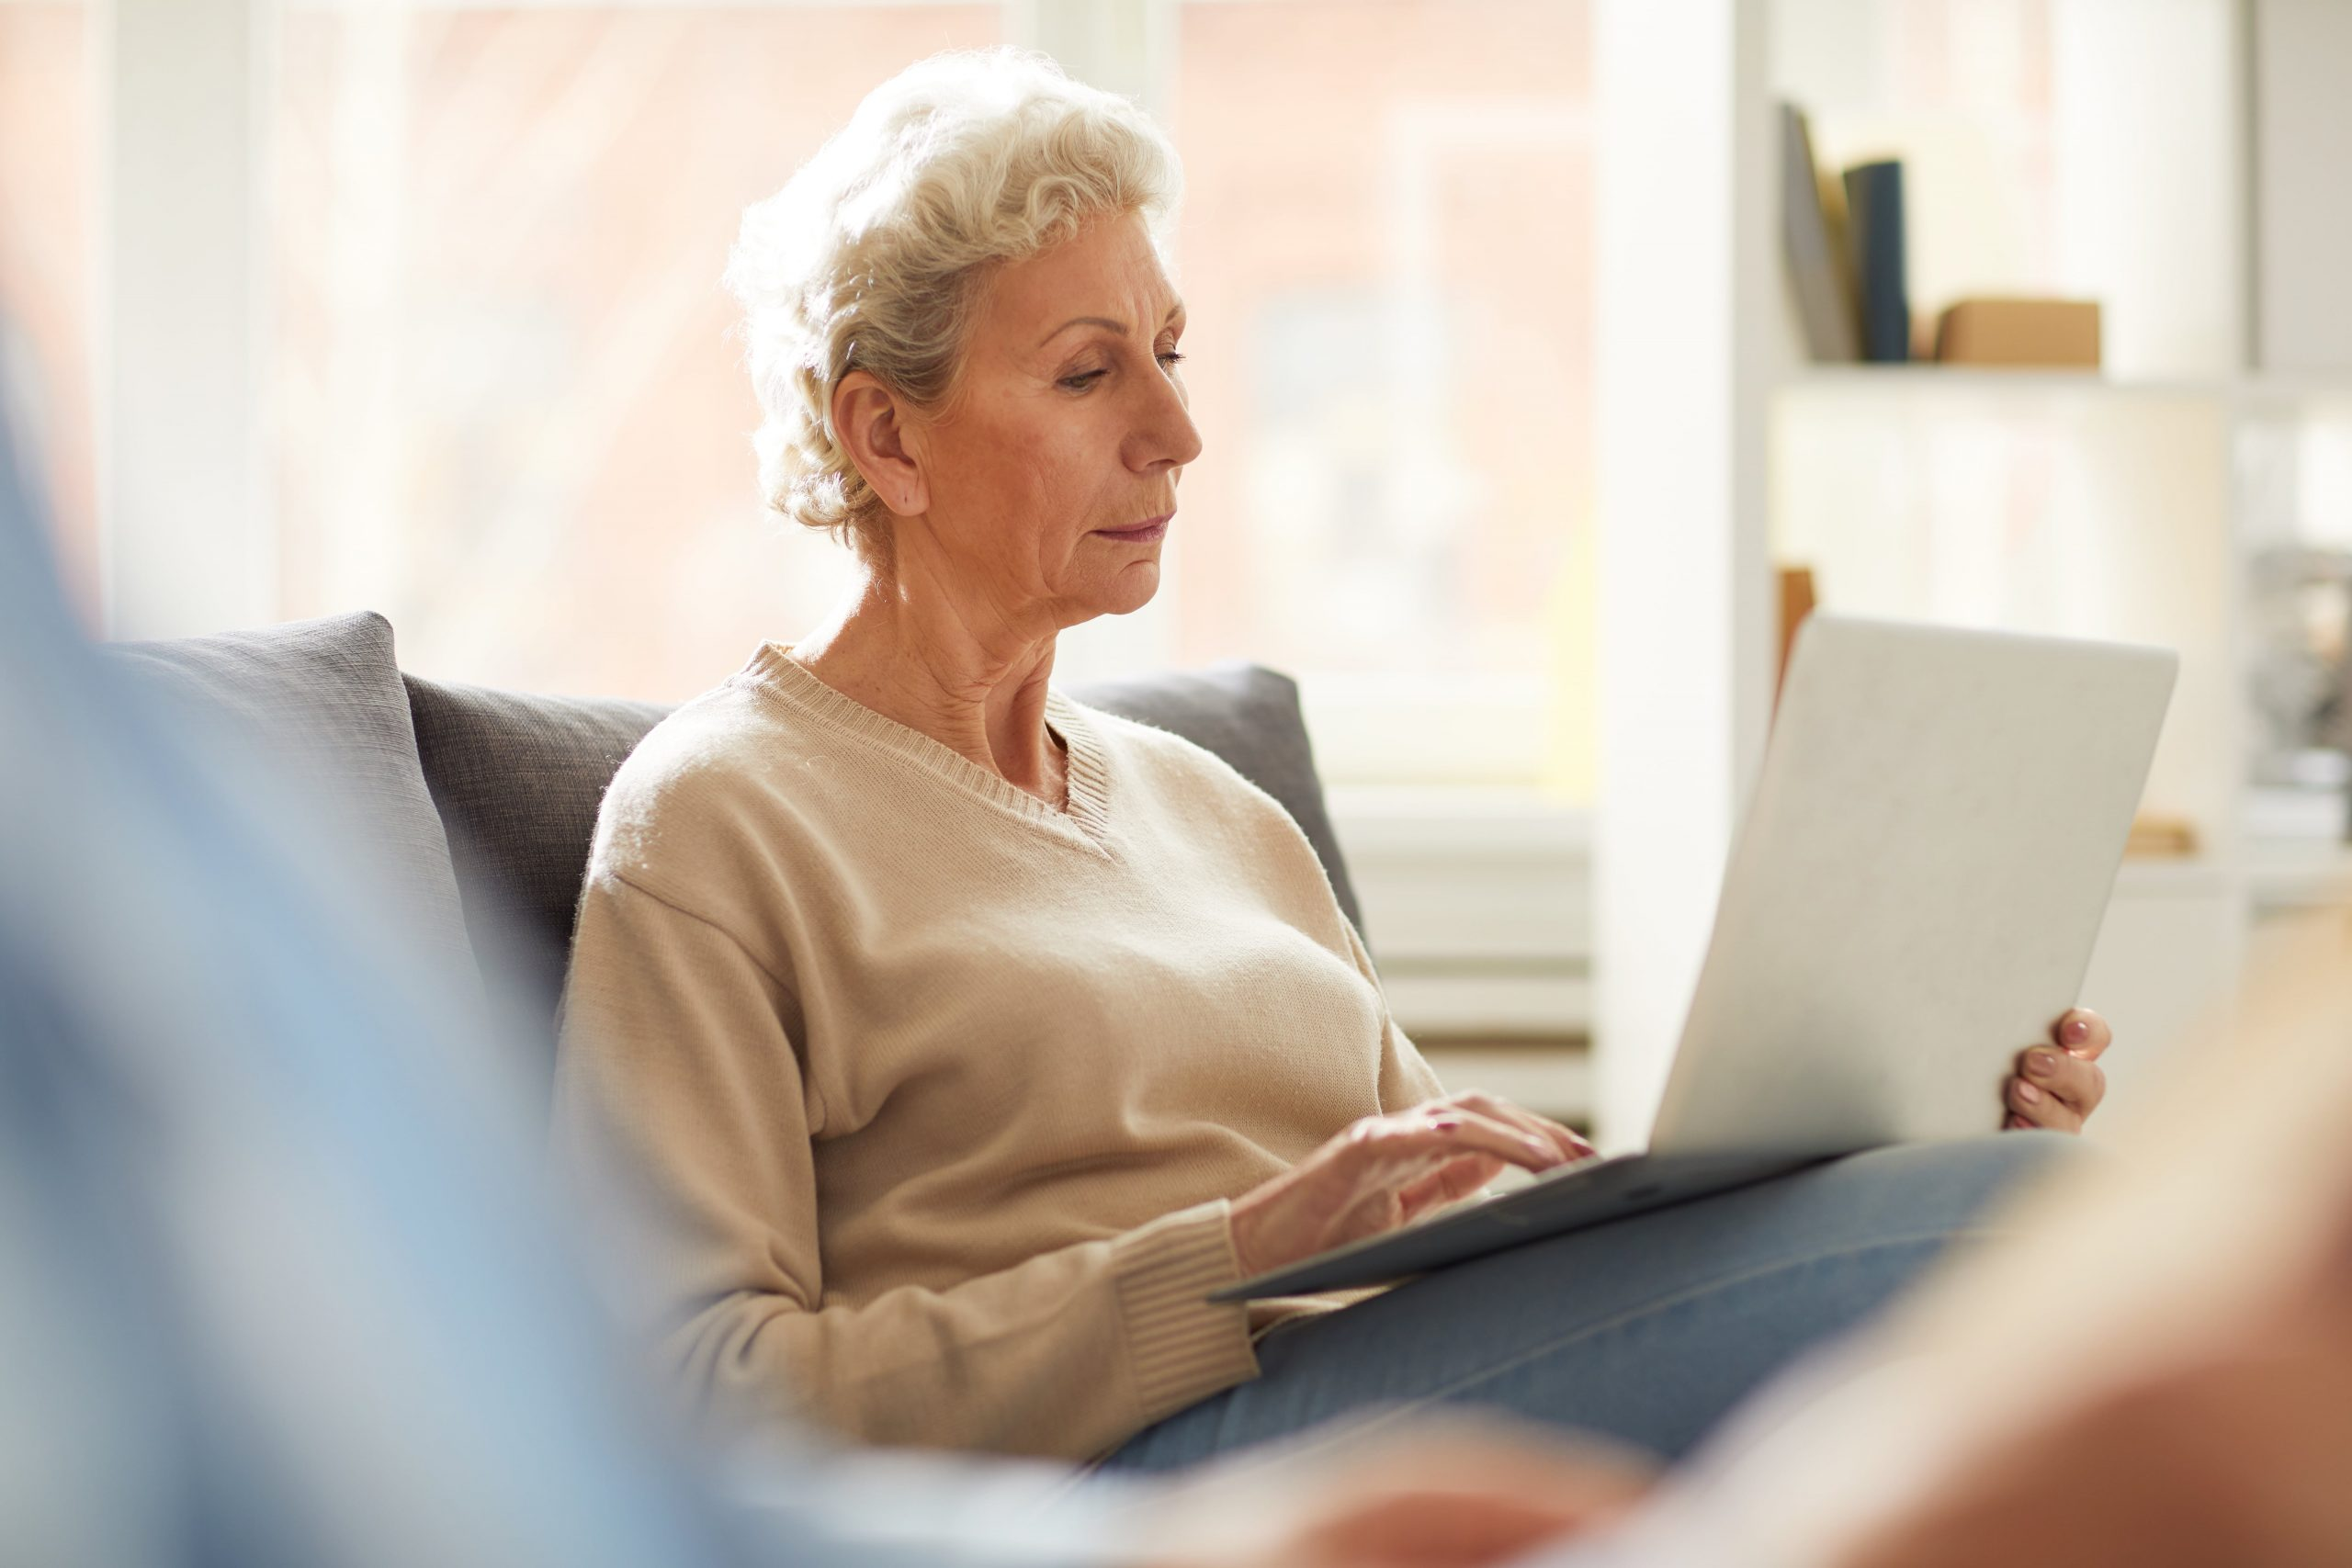 senior-woman-using-laptop-43ZXAVT-min